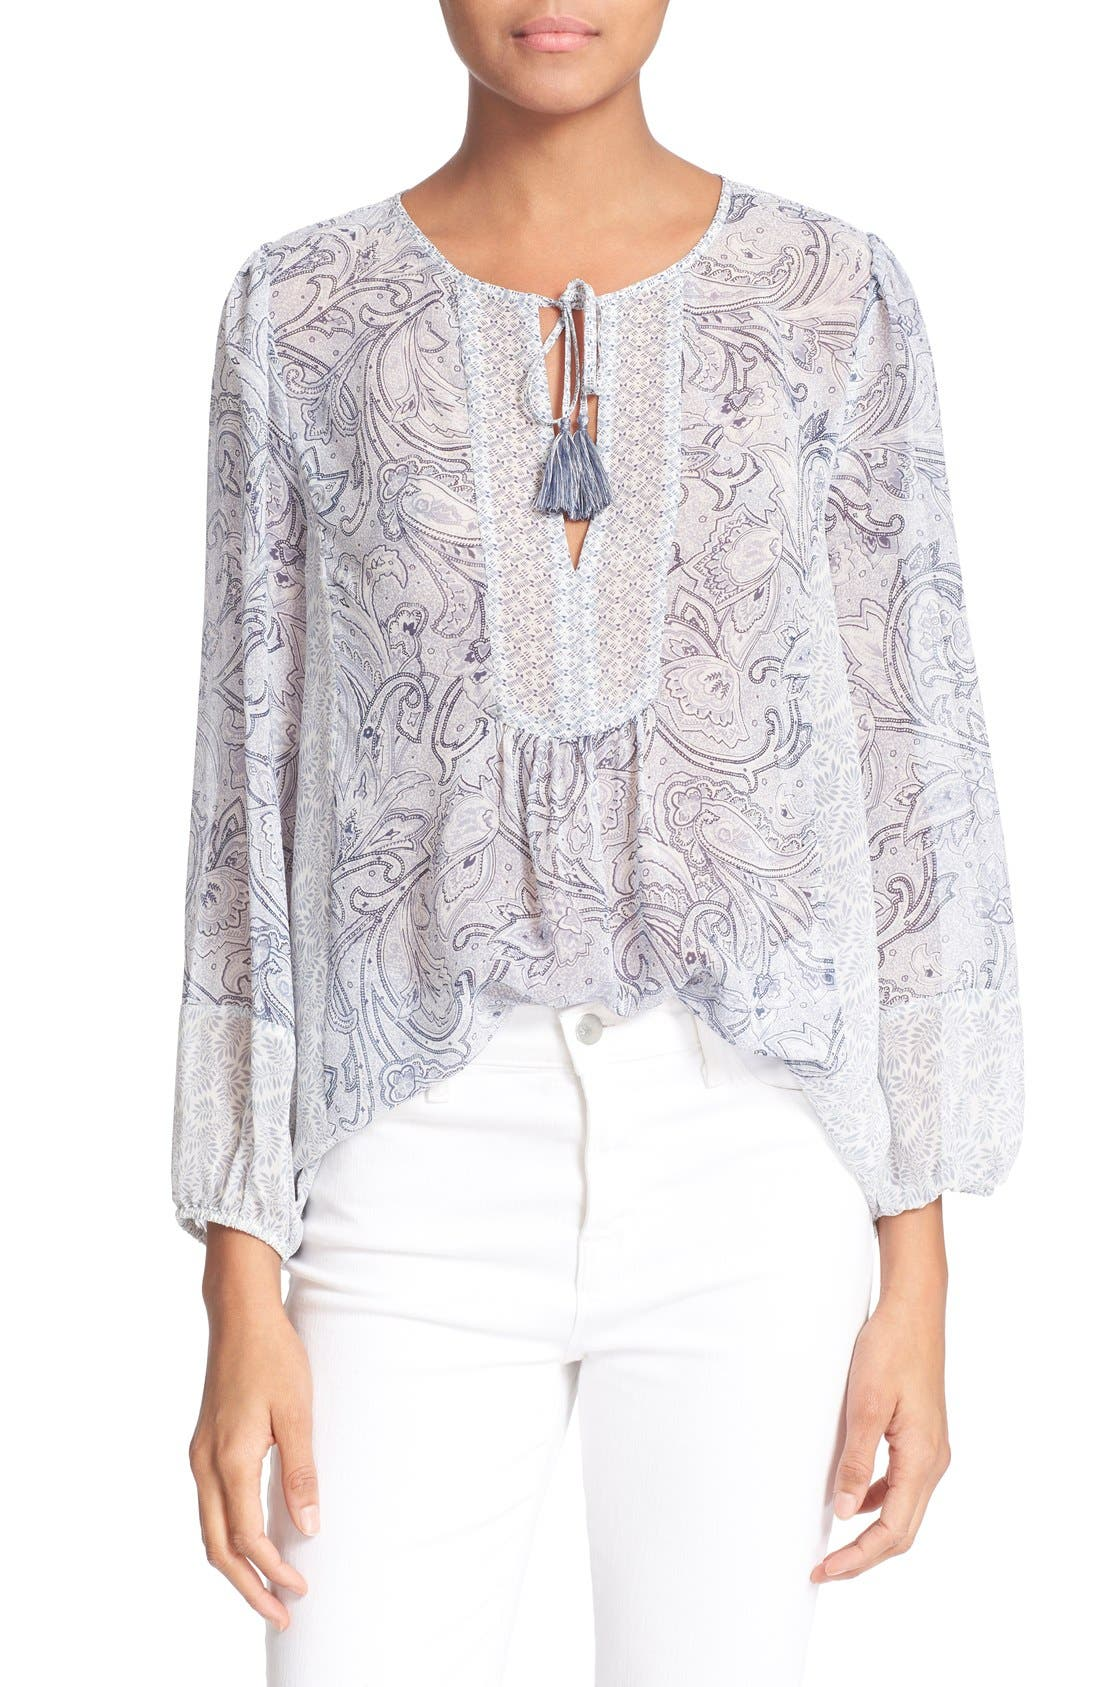 JOIE 'Acerila' Mixed Print Silk Peasant Top, Main, color, 430